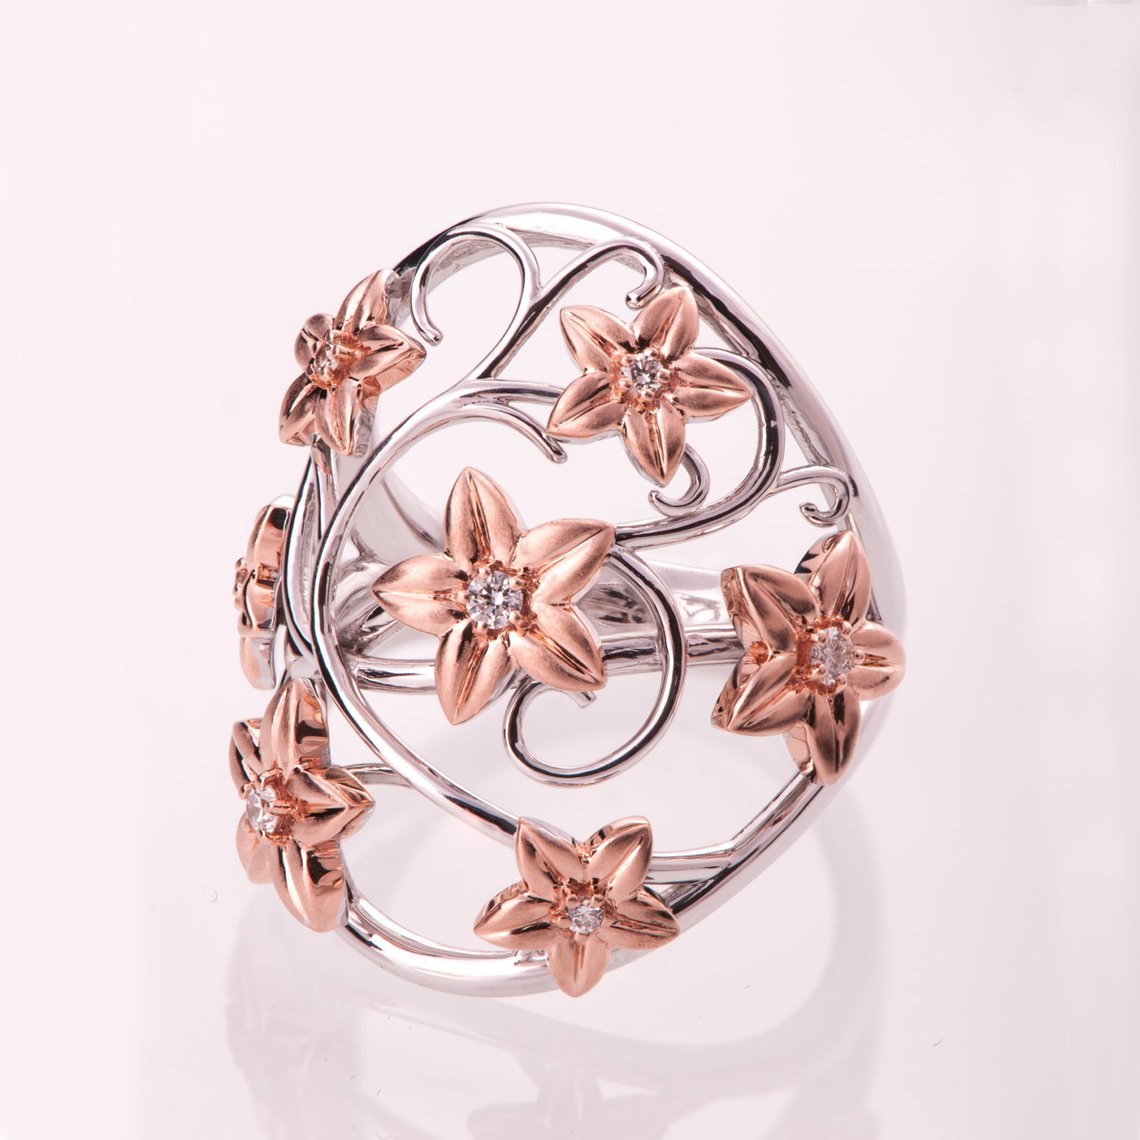 Statement Flower Ring, Two Tone Flowers Ring, Cocktail Ring, Statement Ring, Rose Gold Ring, Diamond Flower Ring, vintage Ring.jpg